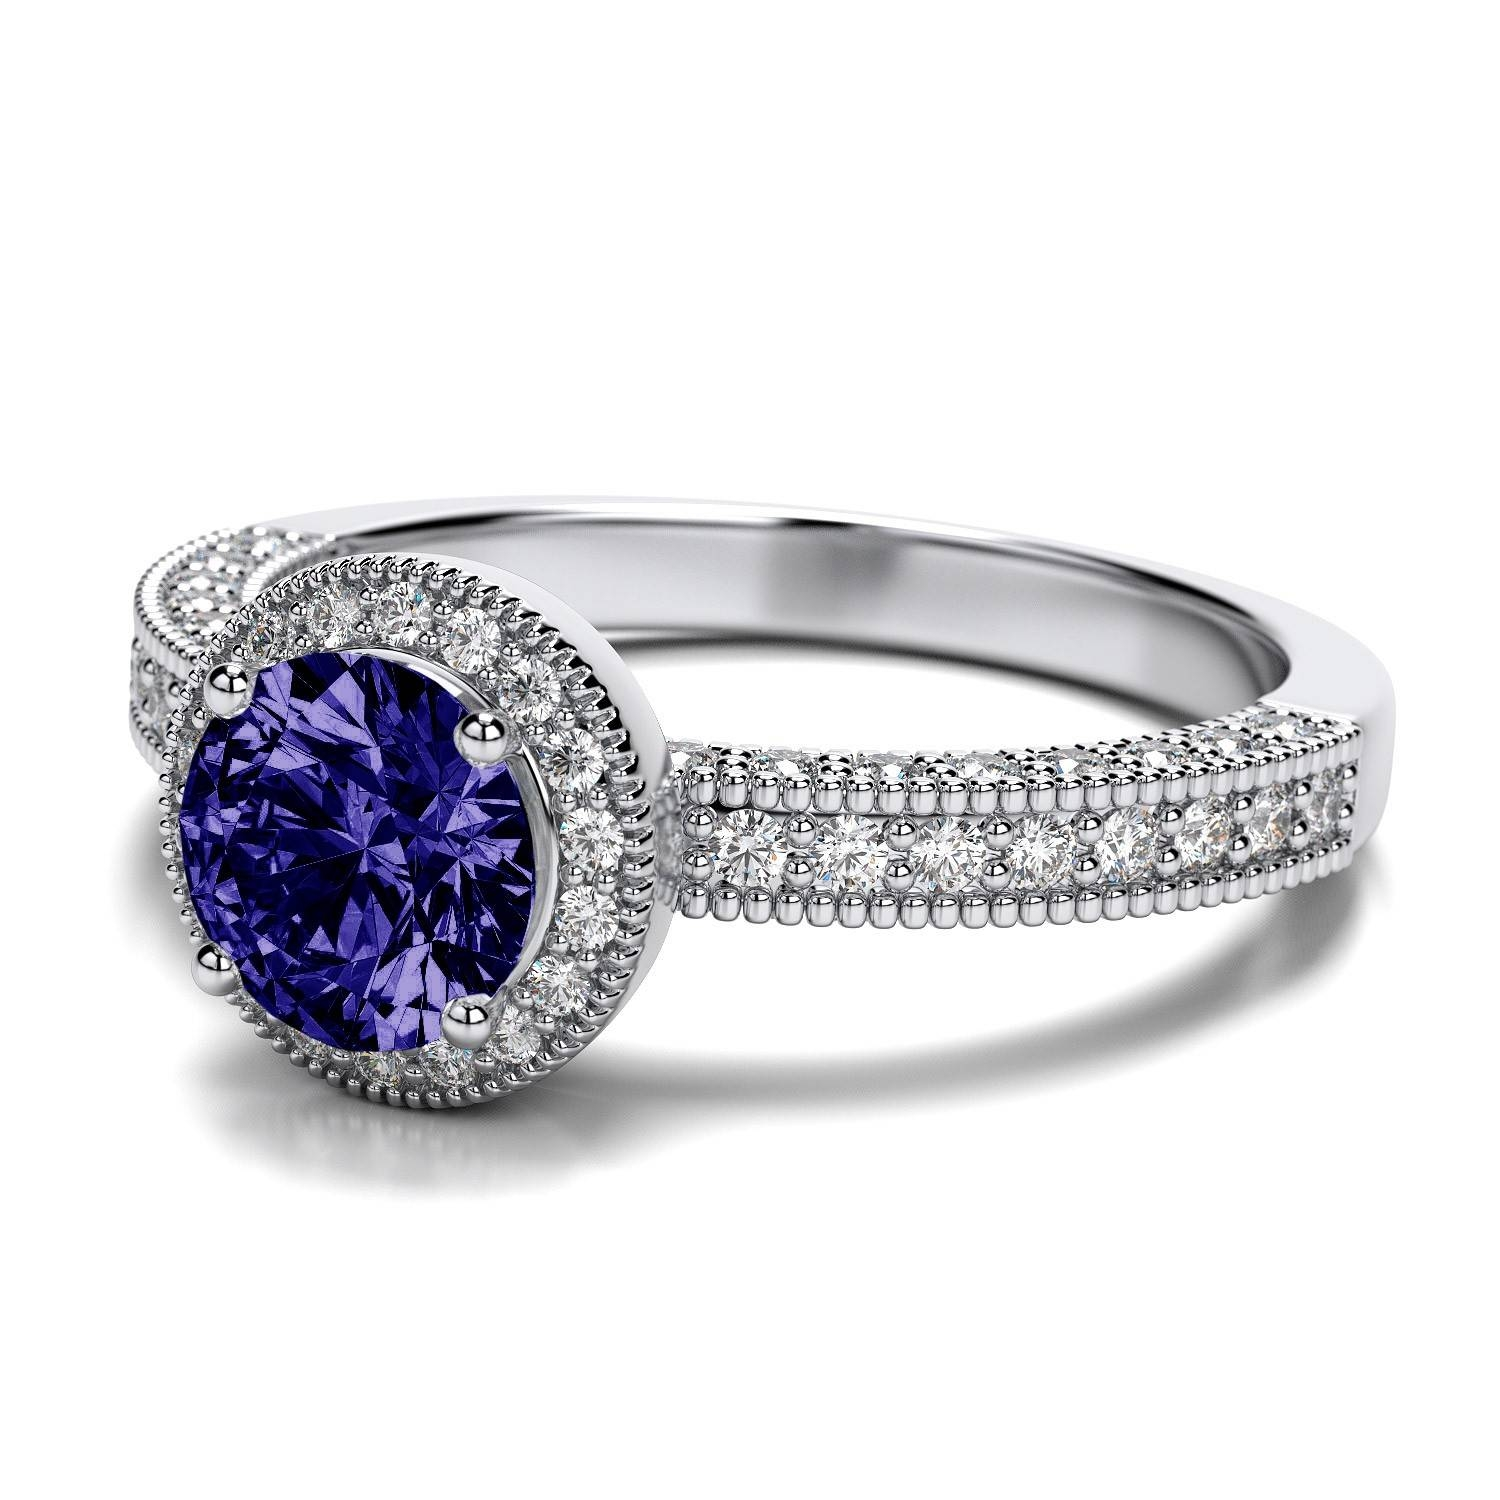 6Mm Tanzanite And Vintage Milgrain .52Ctw Diamond Engagement Ring Regarding Engagement Rings Tanzanite (Gallery 10 of 15)